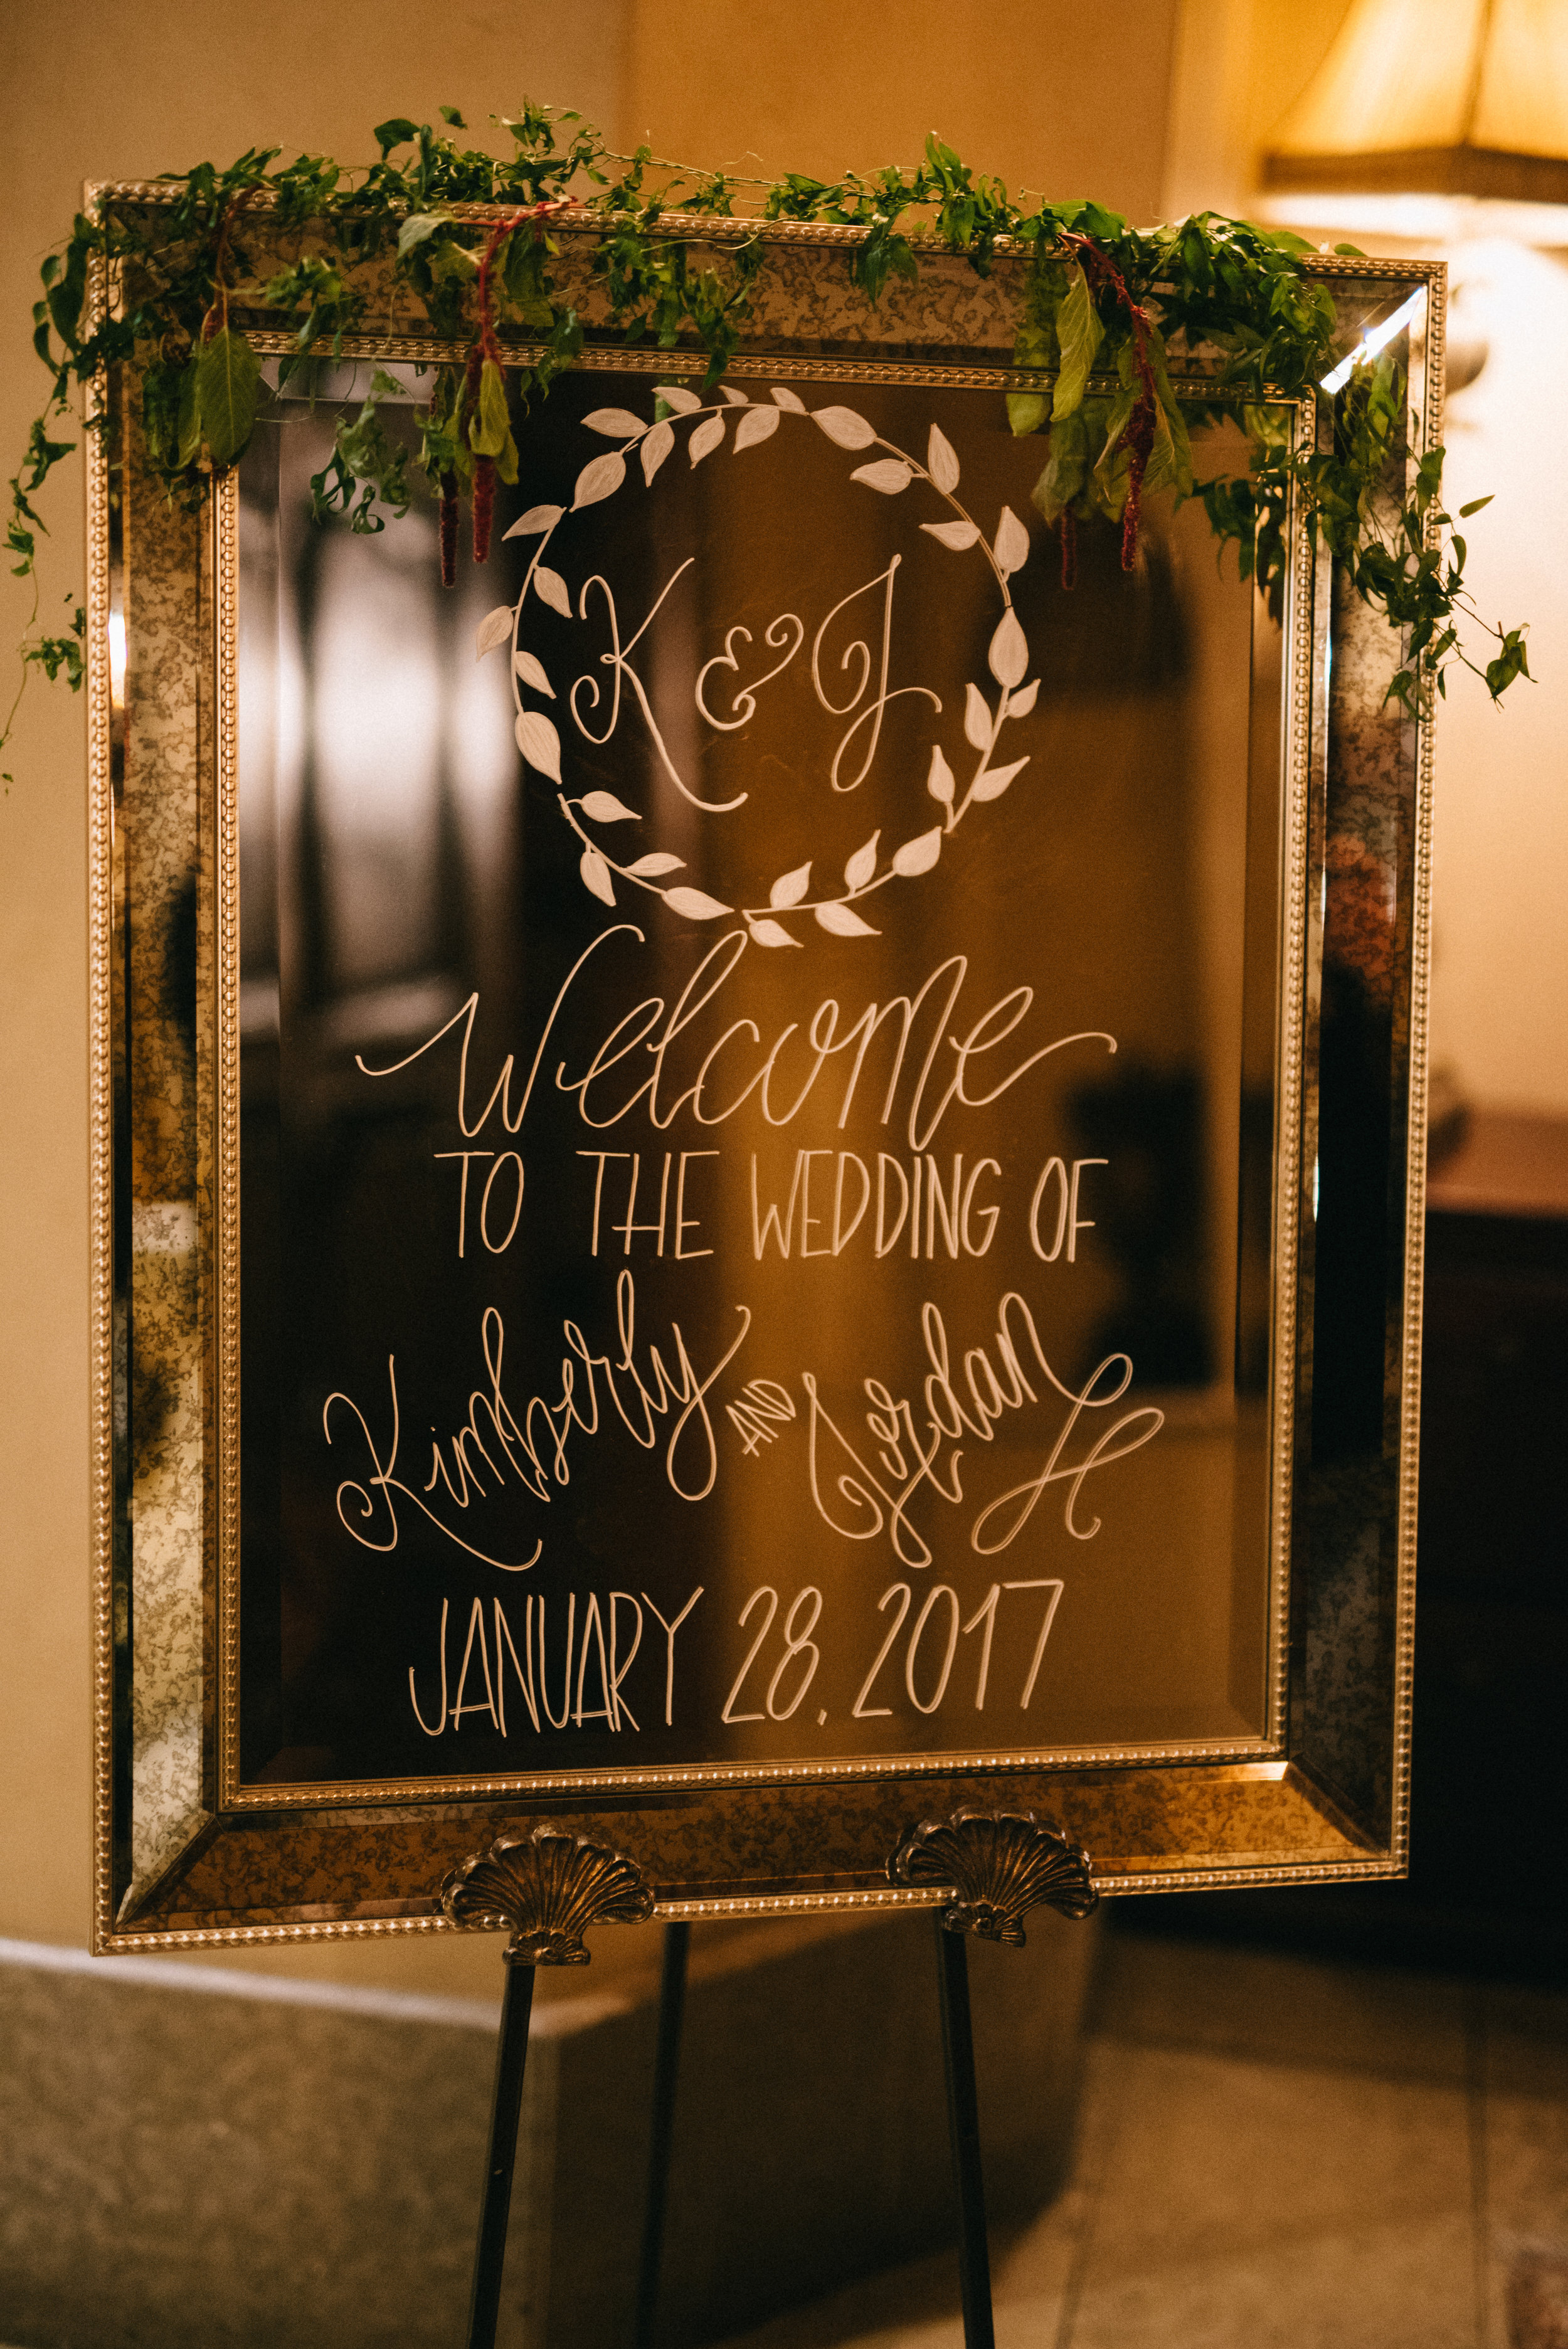 The Welcome mirror greeting guests as they entered the reception.